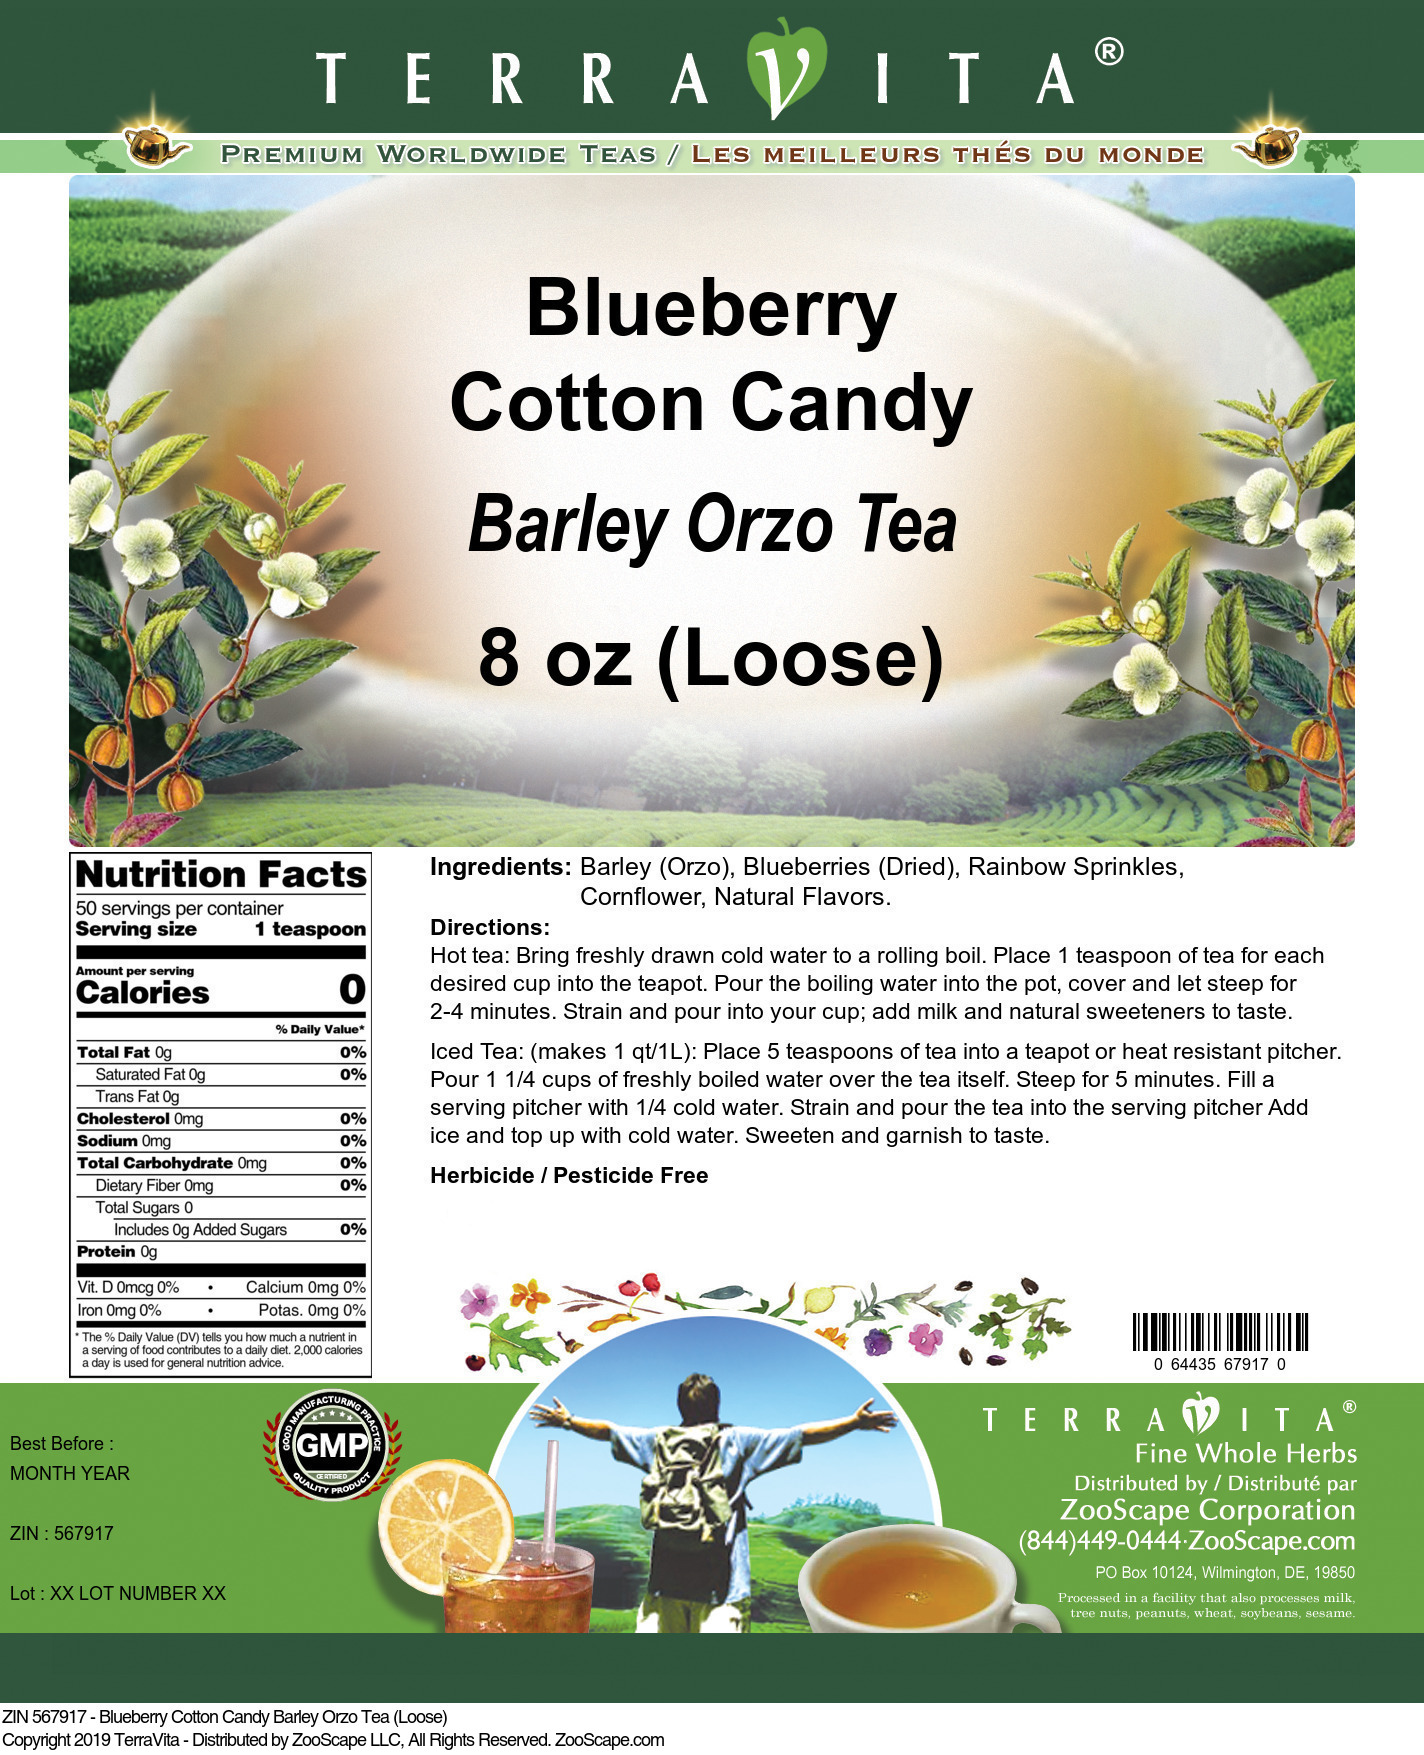 Blueberry Cotton Candy Barley Orzo